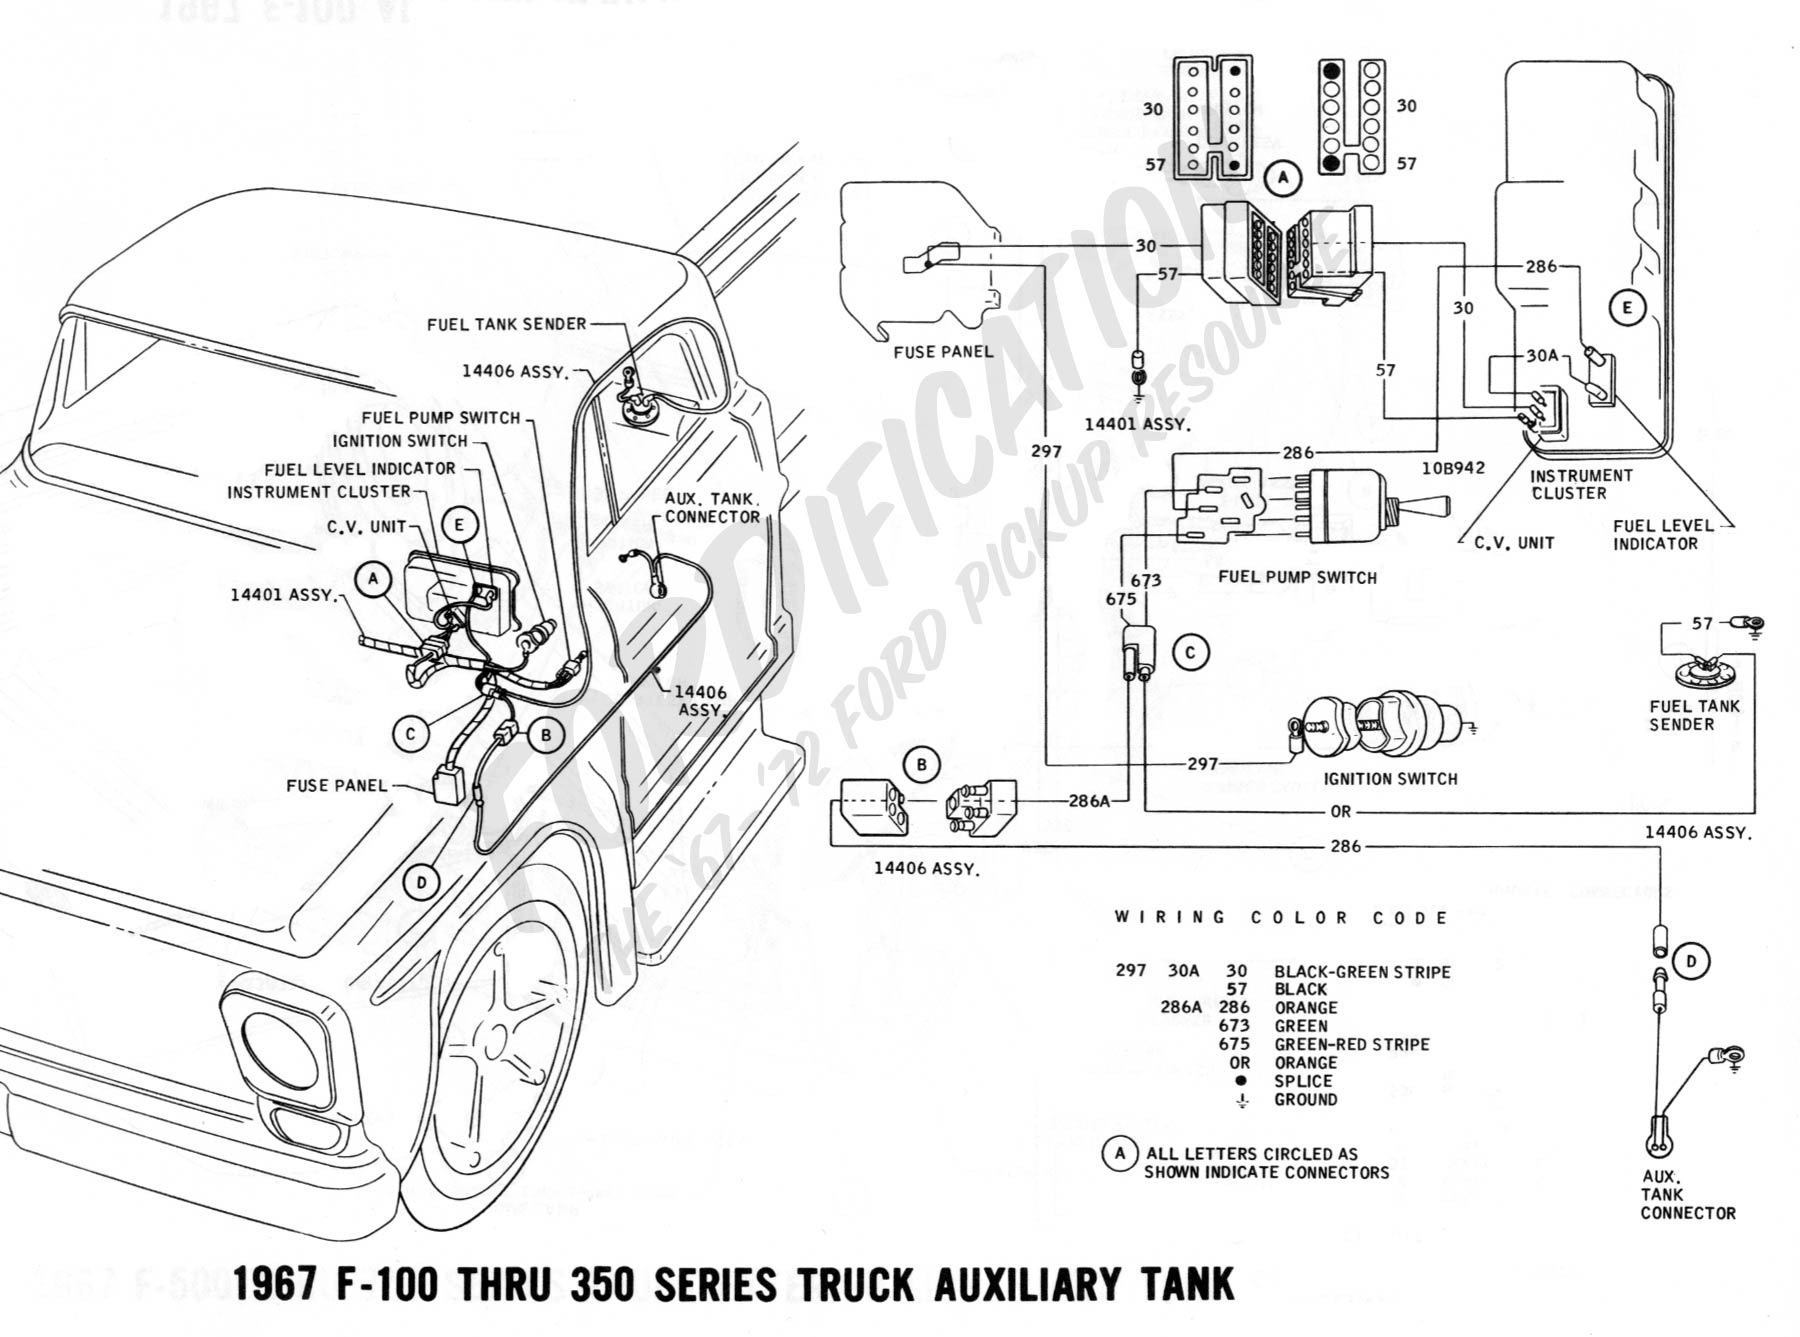 1969 Ford Bronco Fuel Tank Wiring Diagram Trusted Truck Technical Drawings And Schematics Section H Rh Fordification Com 1985 Mustang